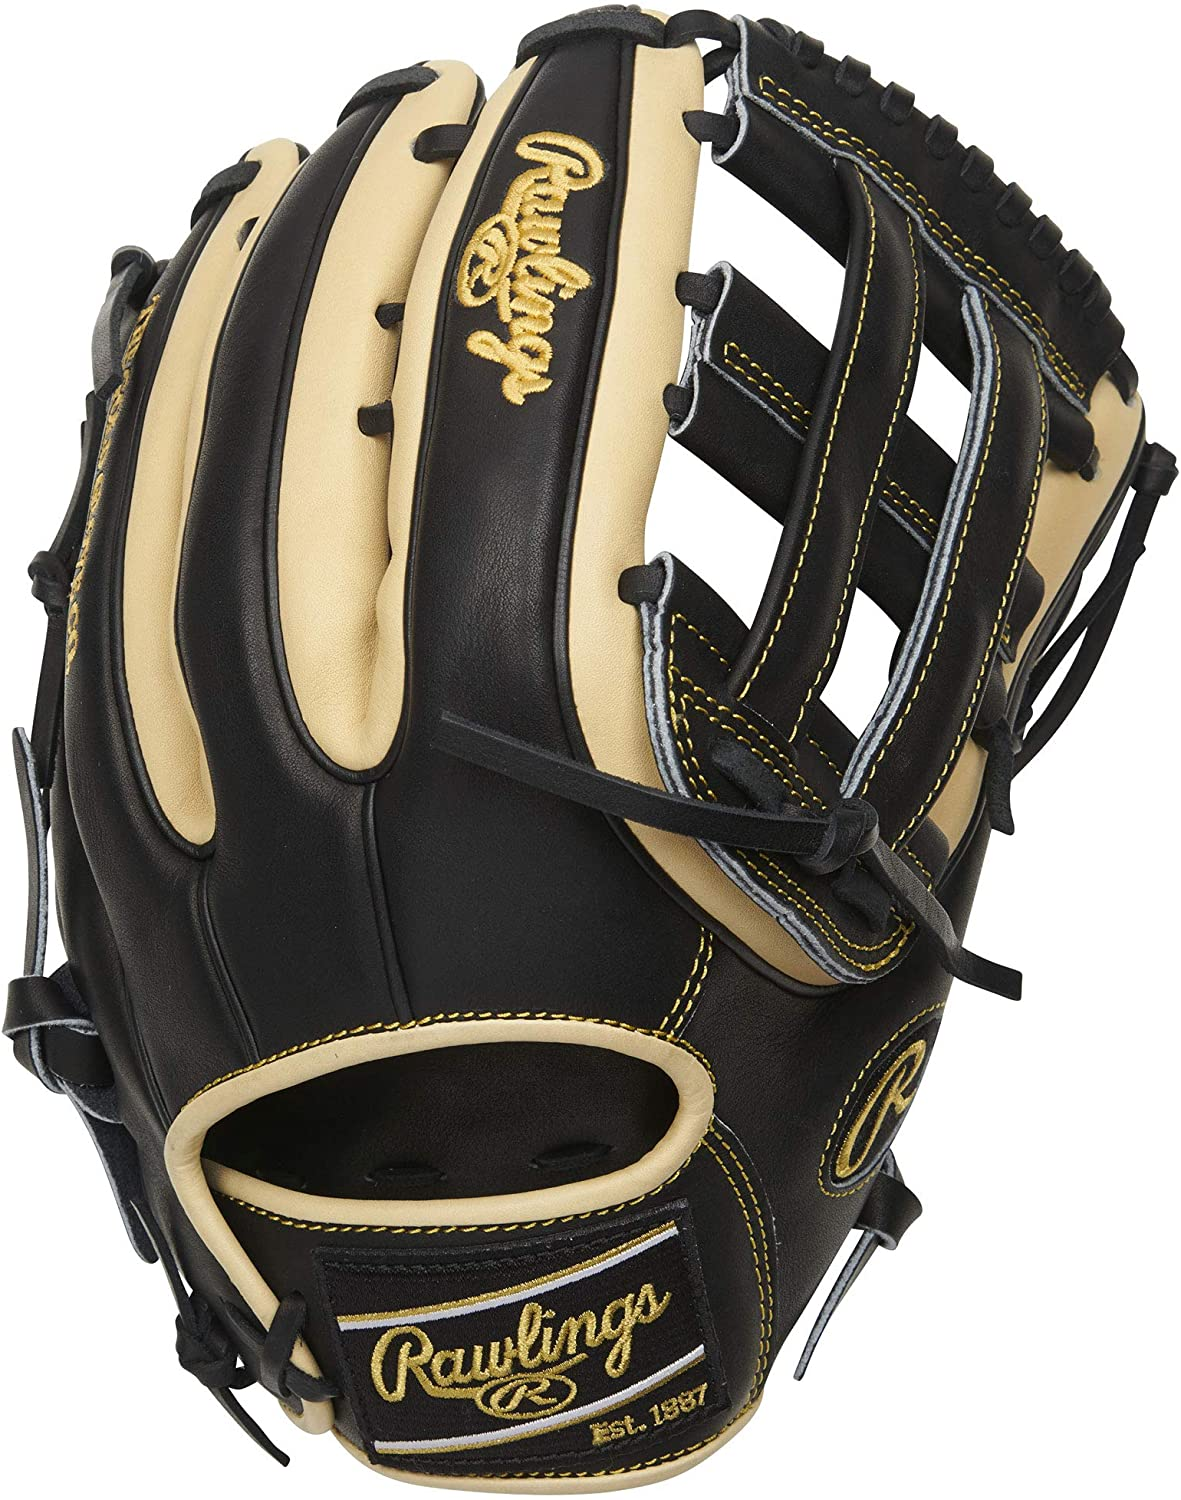 rawlings-heart-of-hide-12-75-r2g-baseball-glove-right-hand-throw PROR3319-6BC-RightHandThrow Rawlings 083321702372 <span>Rawlings all new Heart of the Hide R2G gloves feature little